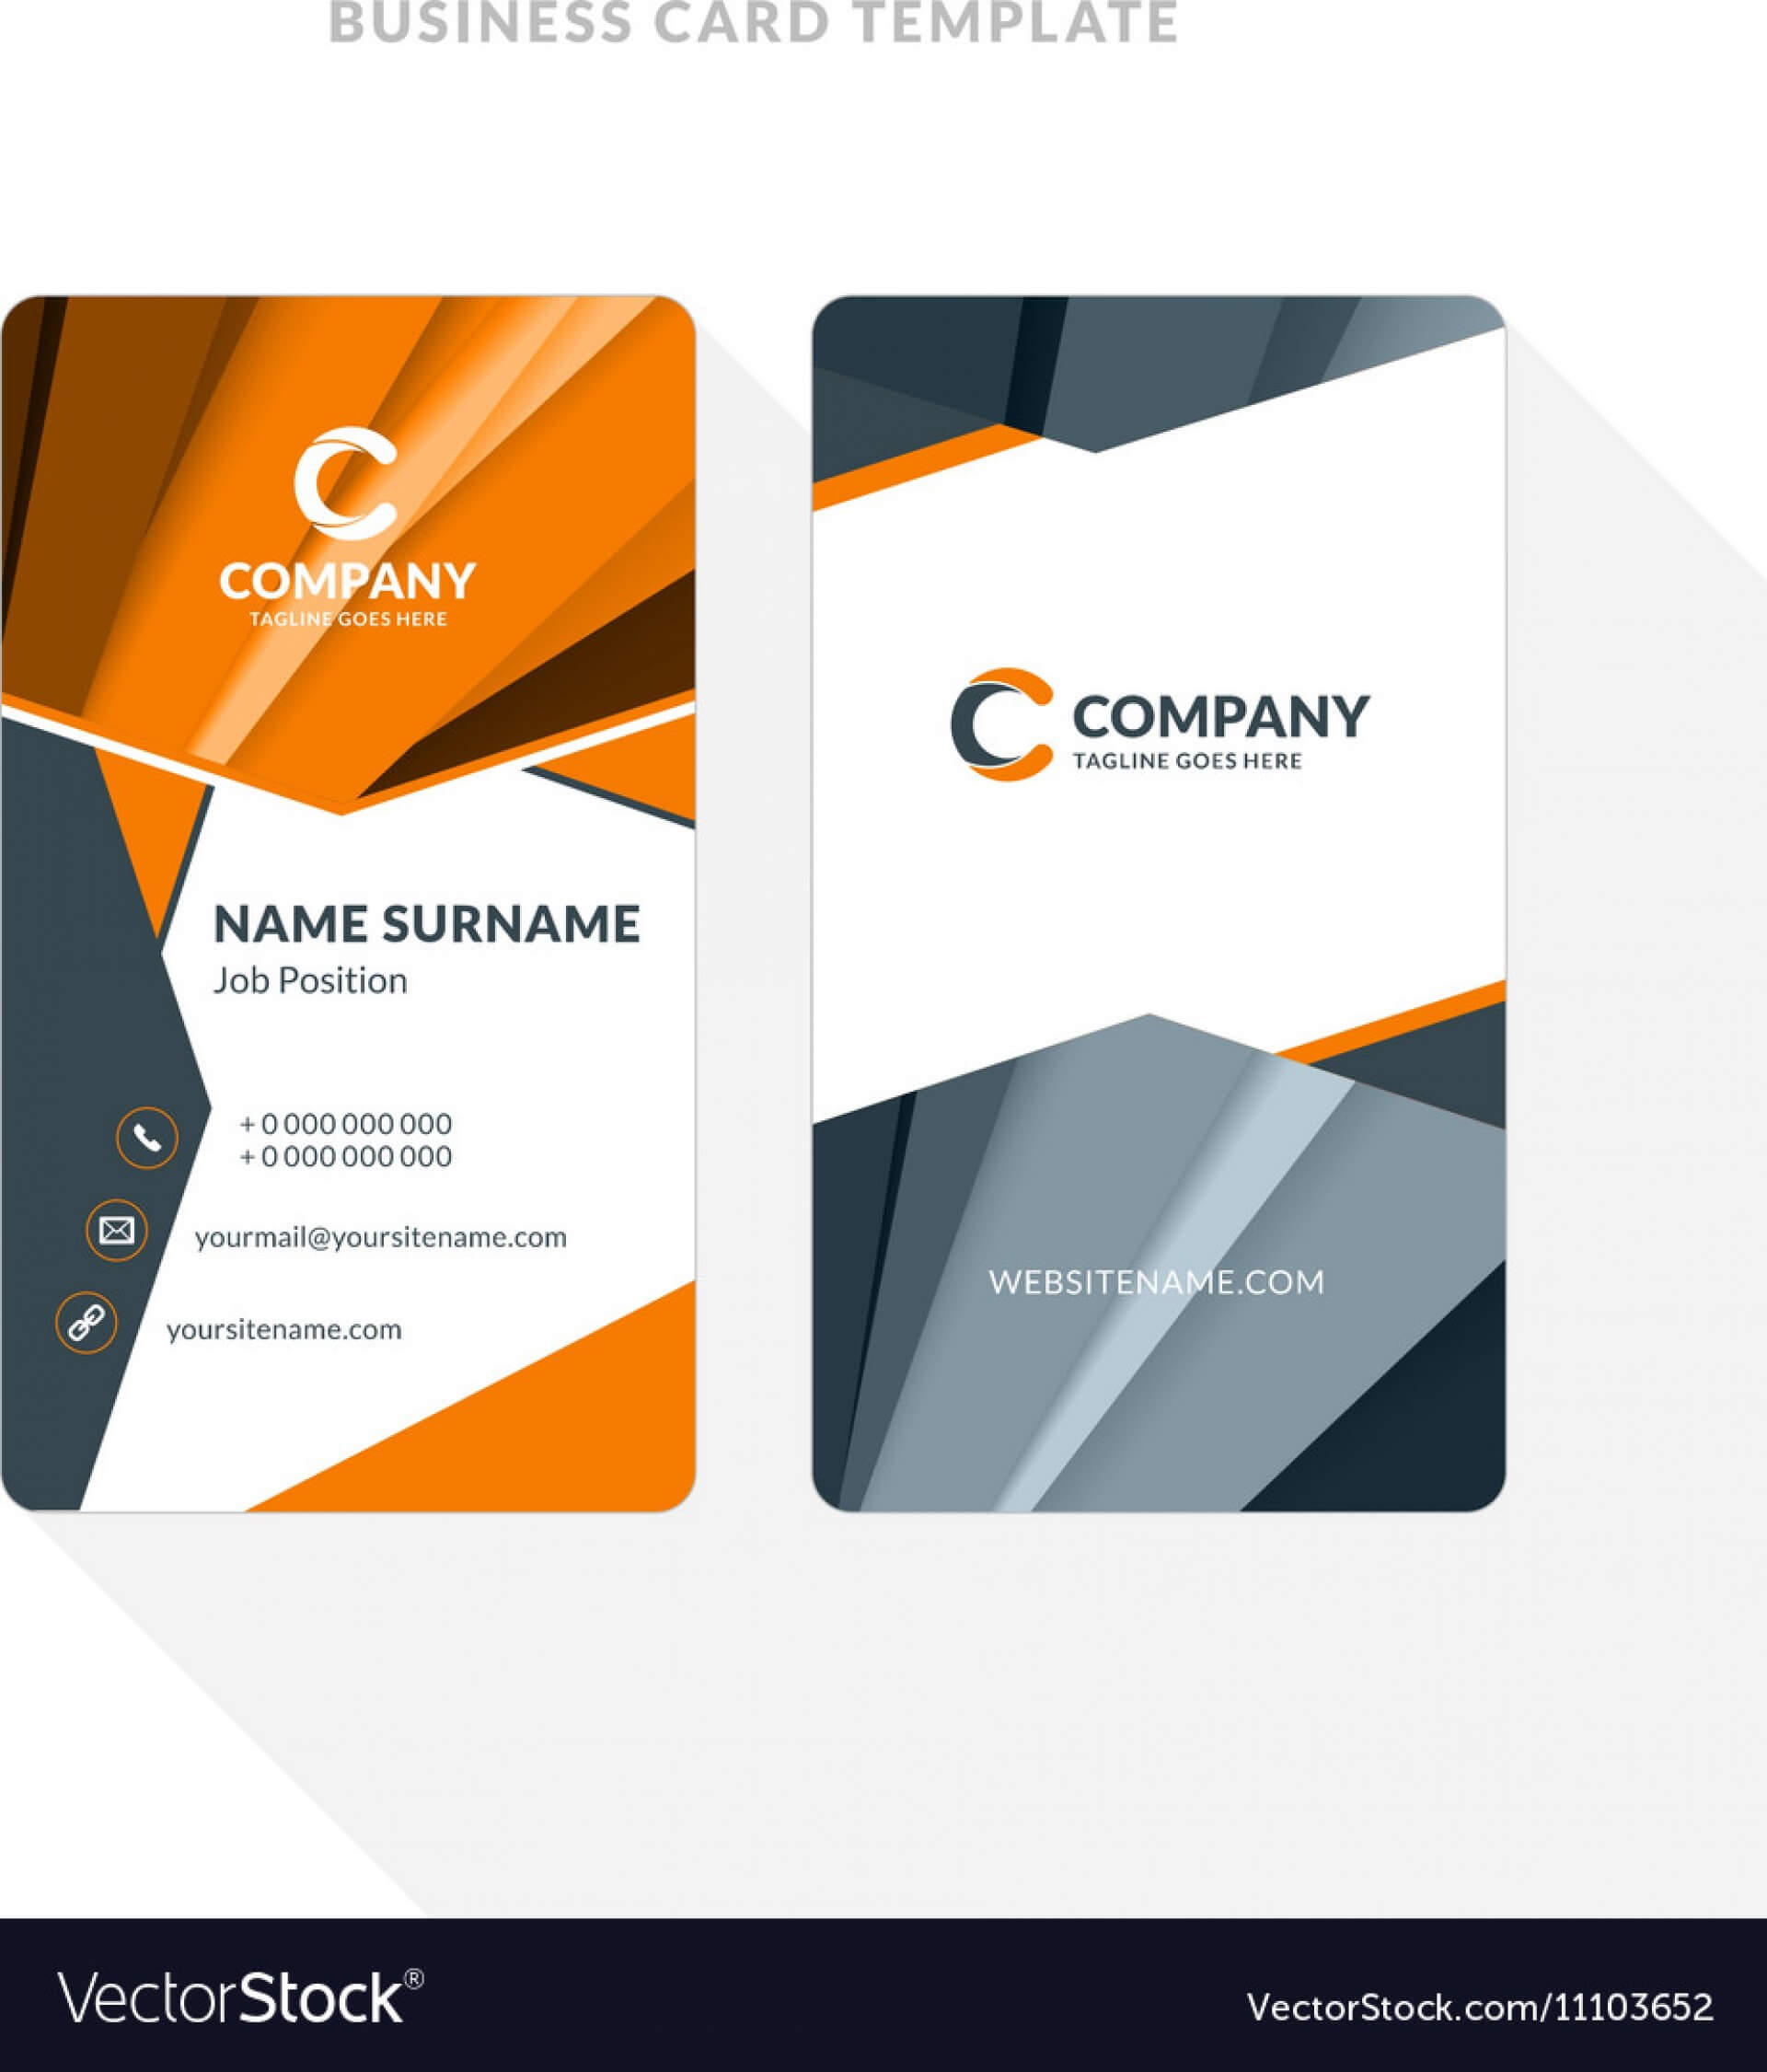 Staggering Double Sided Business Card Template Ideas Free Pertaining To Double Sided Business Card Template Illustrator